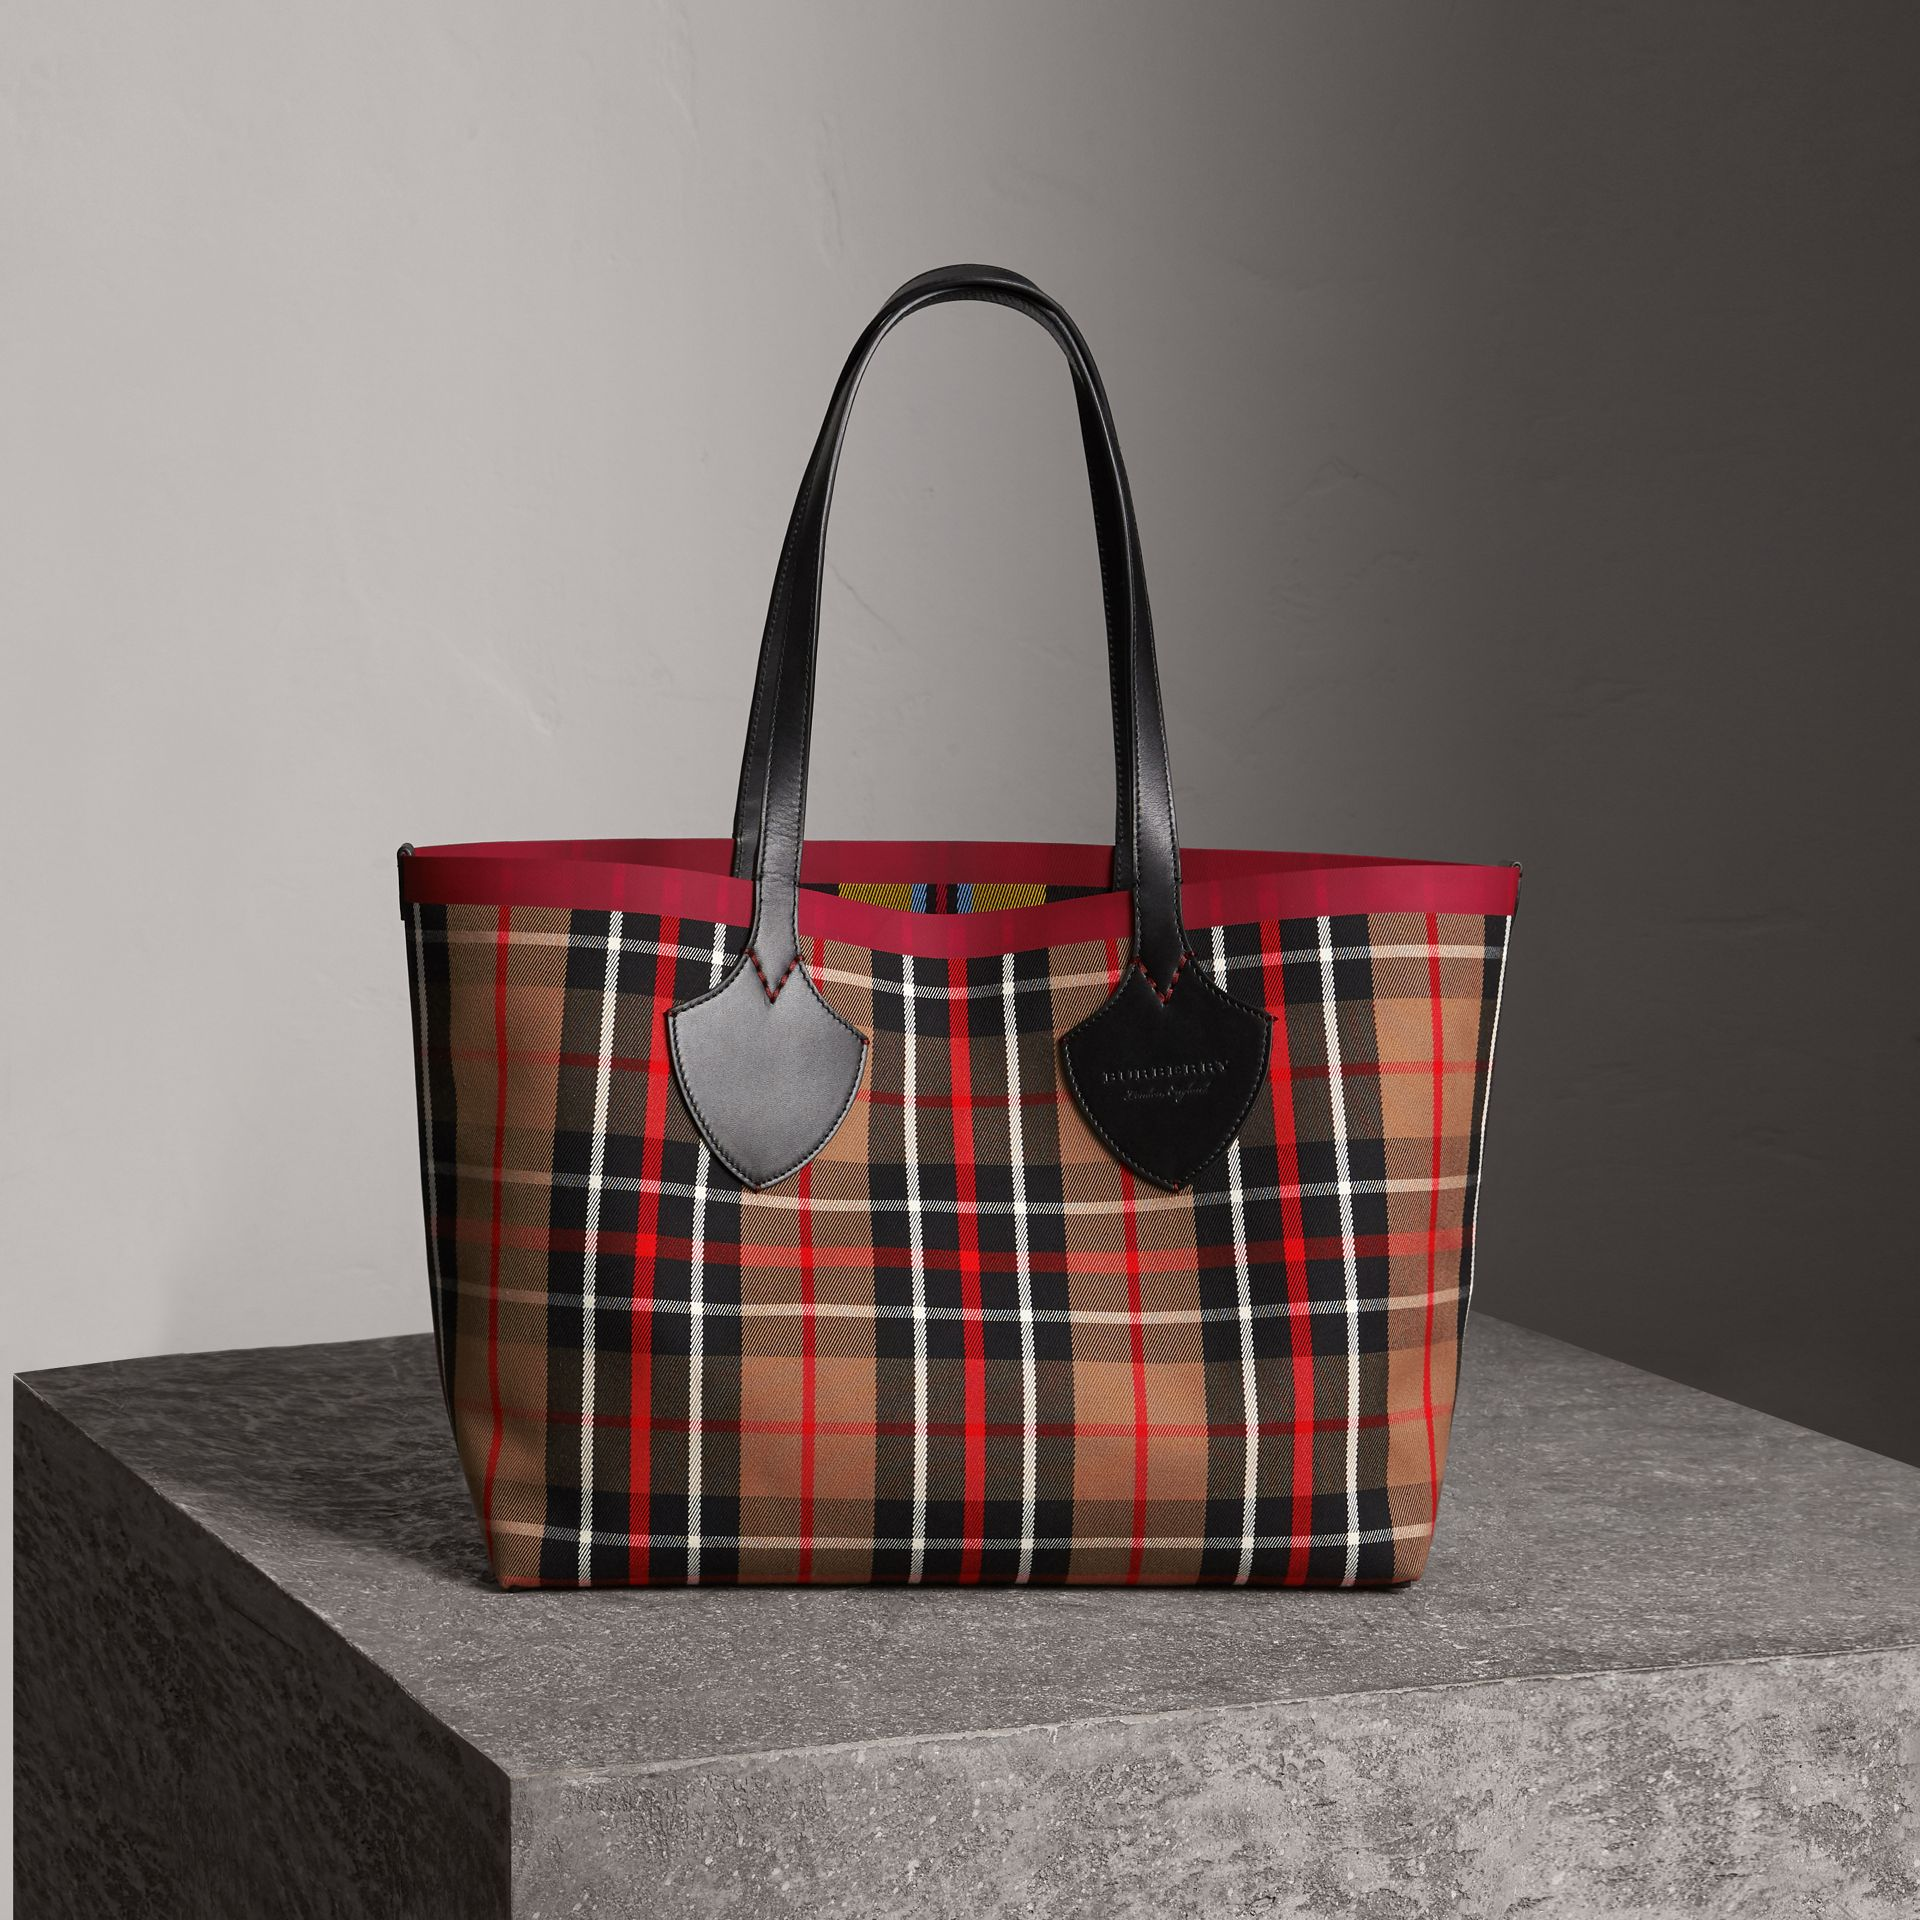 Sac tote The Giant moyen réversible en coton tartan (Caramel/jaune Lin) | Burberry Canada - photo de la galerie 0